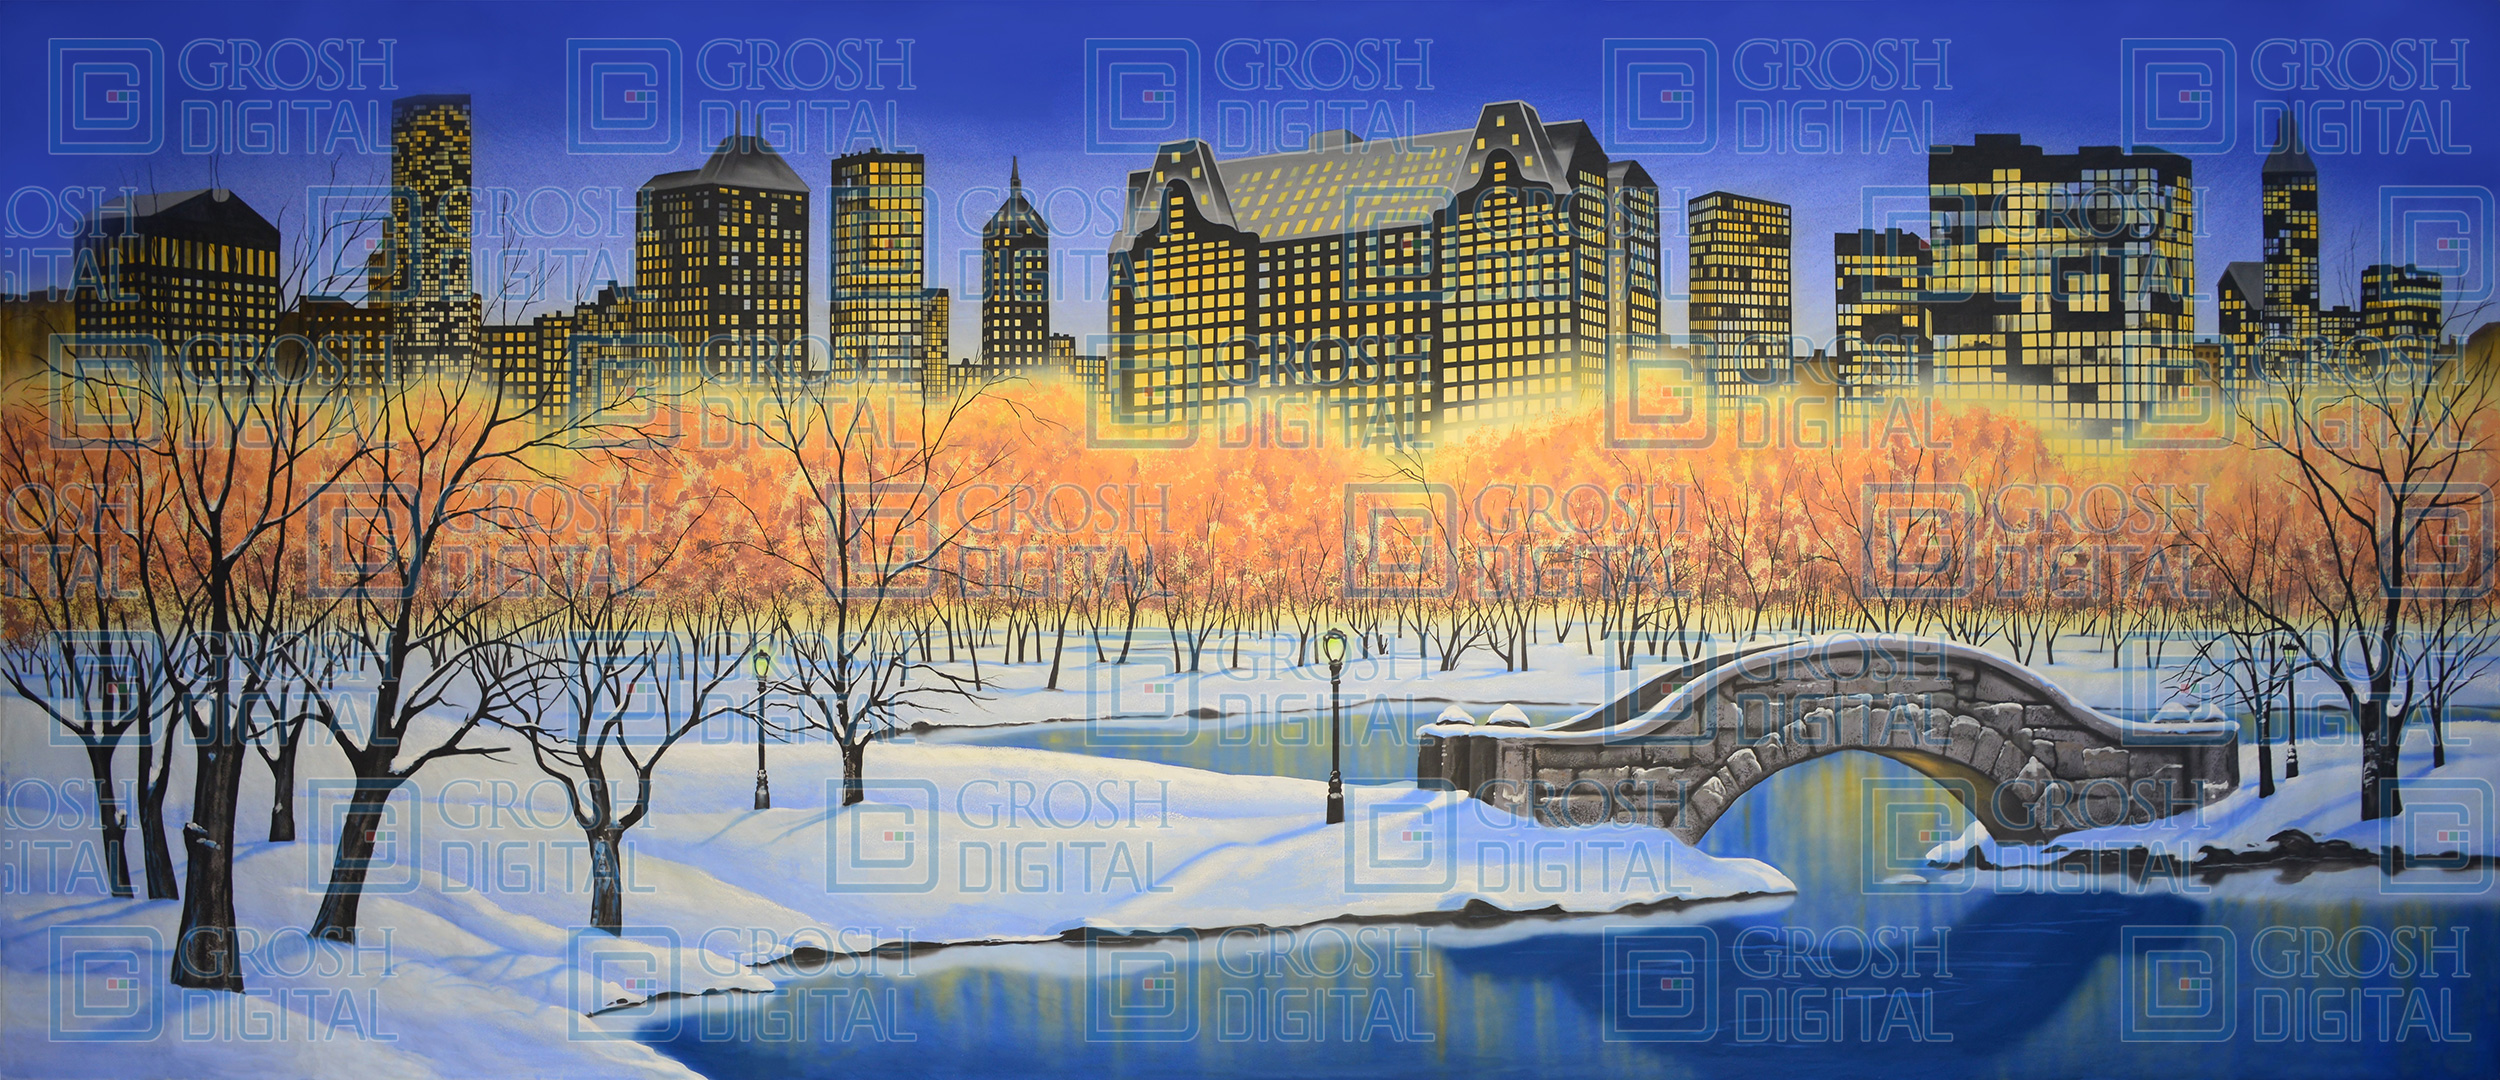 Central Park in Winter Projected Backdrop for Elf the Musical, Holiday, Skylines, Snows